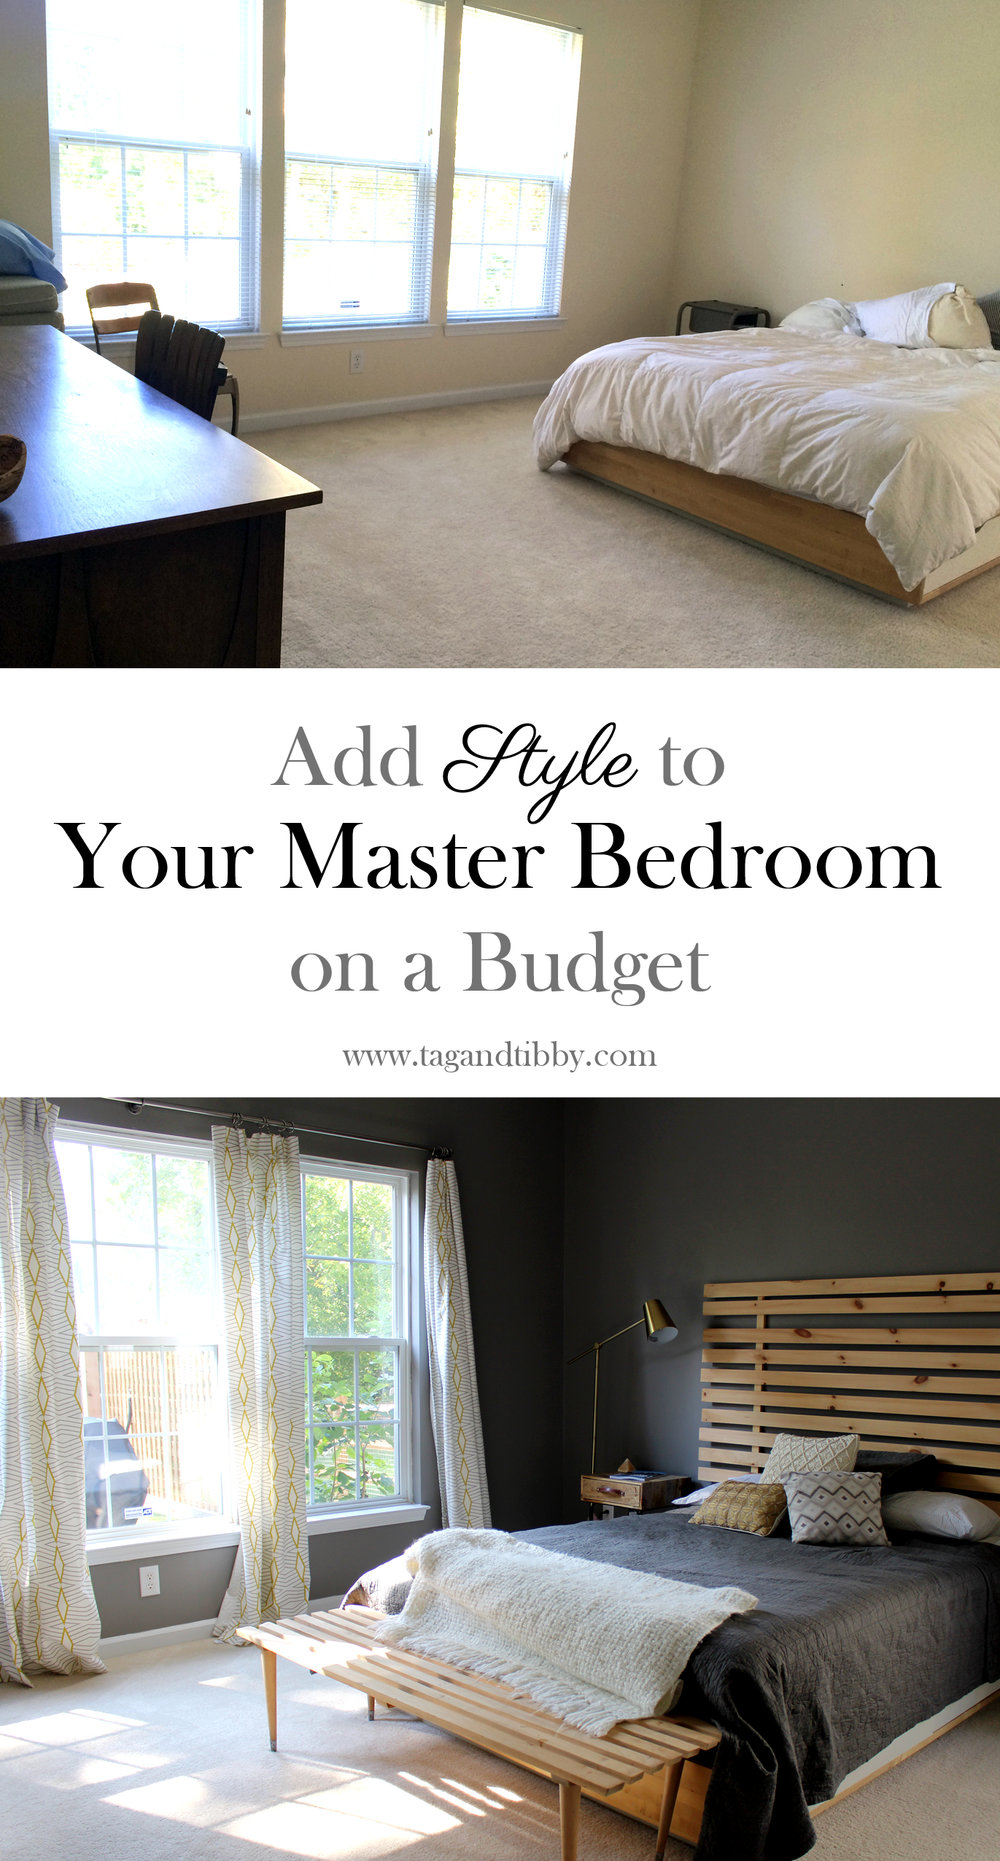 4 tips for adding style to your master bedroom without breaking the bank!